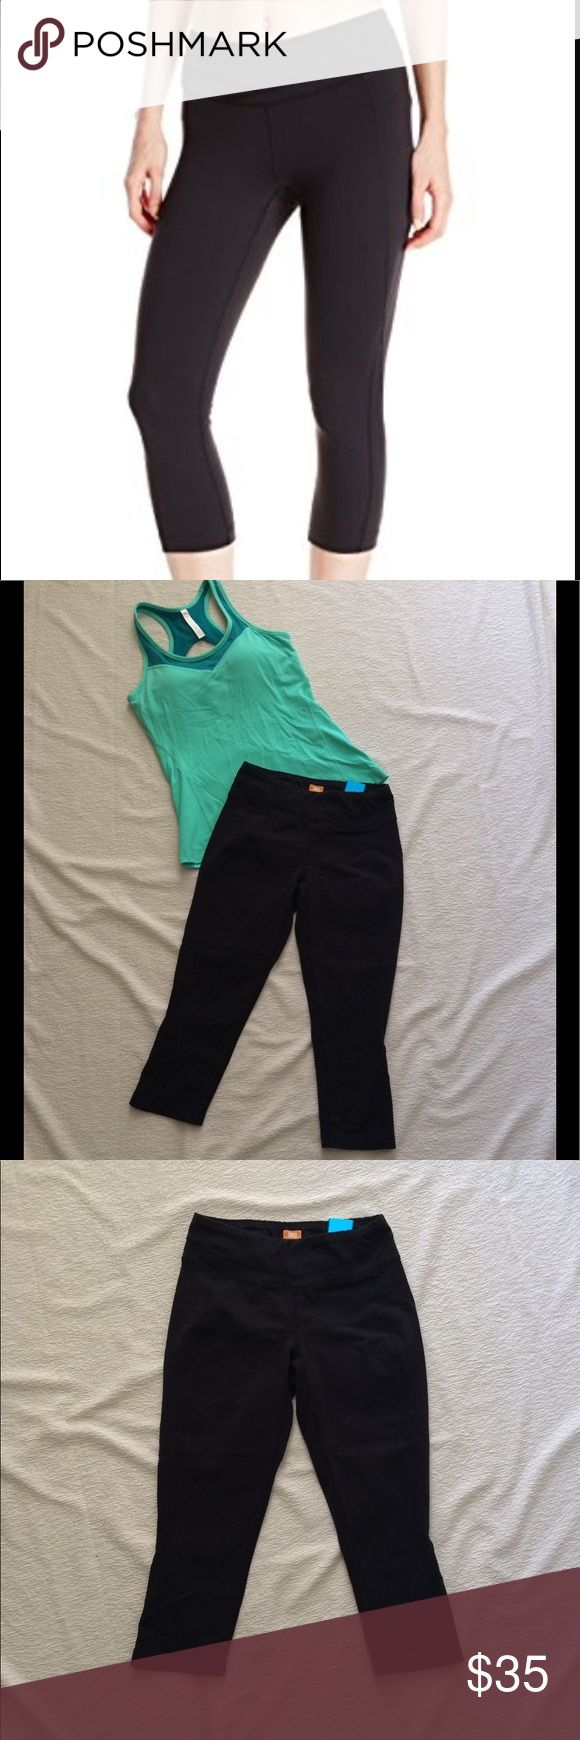 Lucy Hatha Black Capri Leggings Perfect for the yoga studio, the climbing gym and everywhere in between, the Lucy Hatha Capri Leggings for women provide flattering style and fantastic performance. These Lucy yoga leggings are made with supportive and moisture-wicking Powermax compression fabric. Flat-locked seams eliminate chafing and style lines create a slimming look.A gusset inset allows a full range of motion, and a body hugging is comfortable and supportive without being restrictive. SZ…